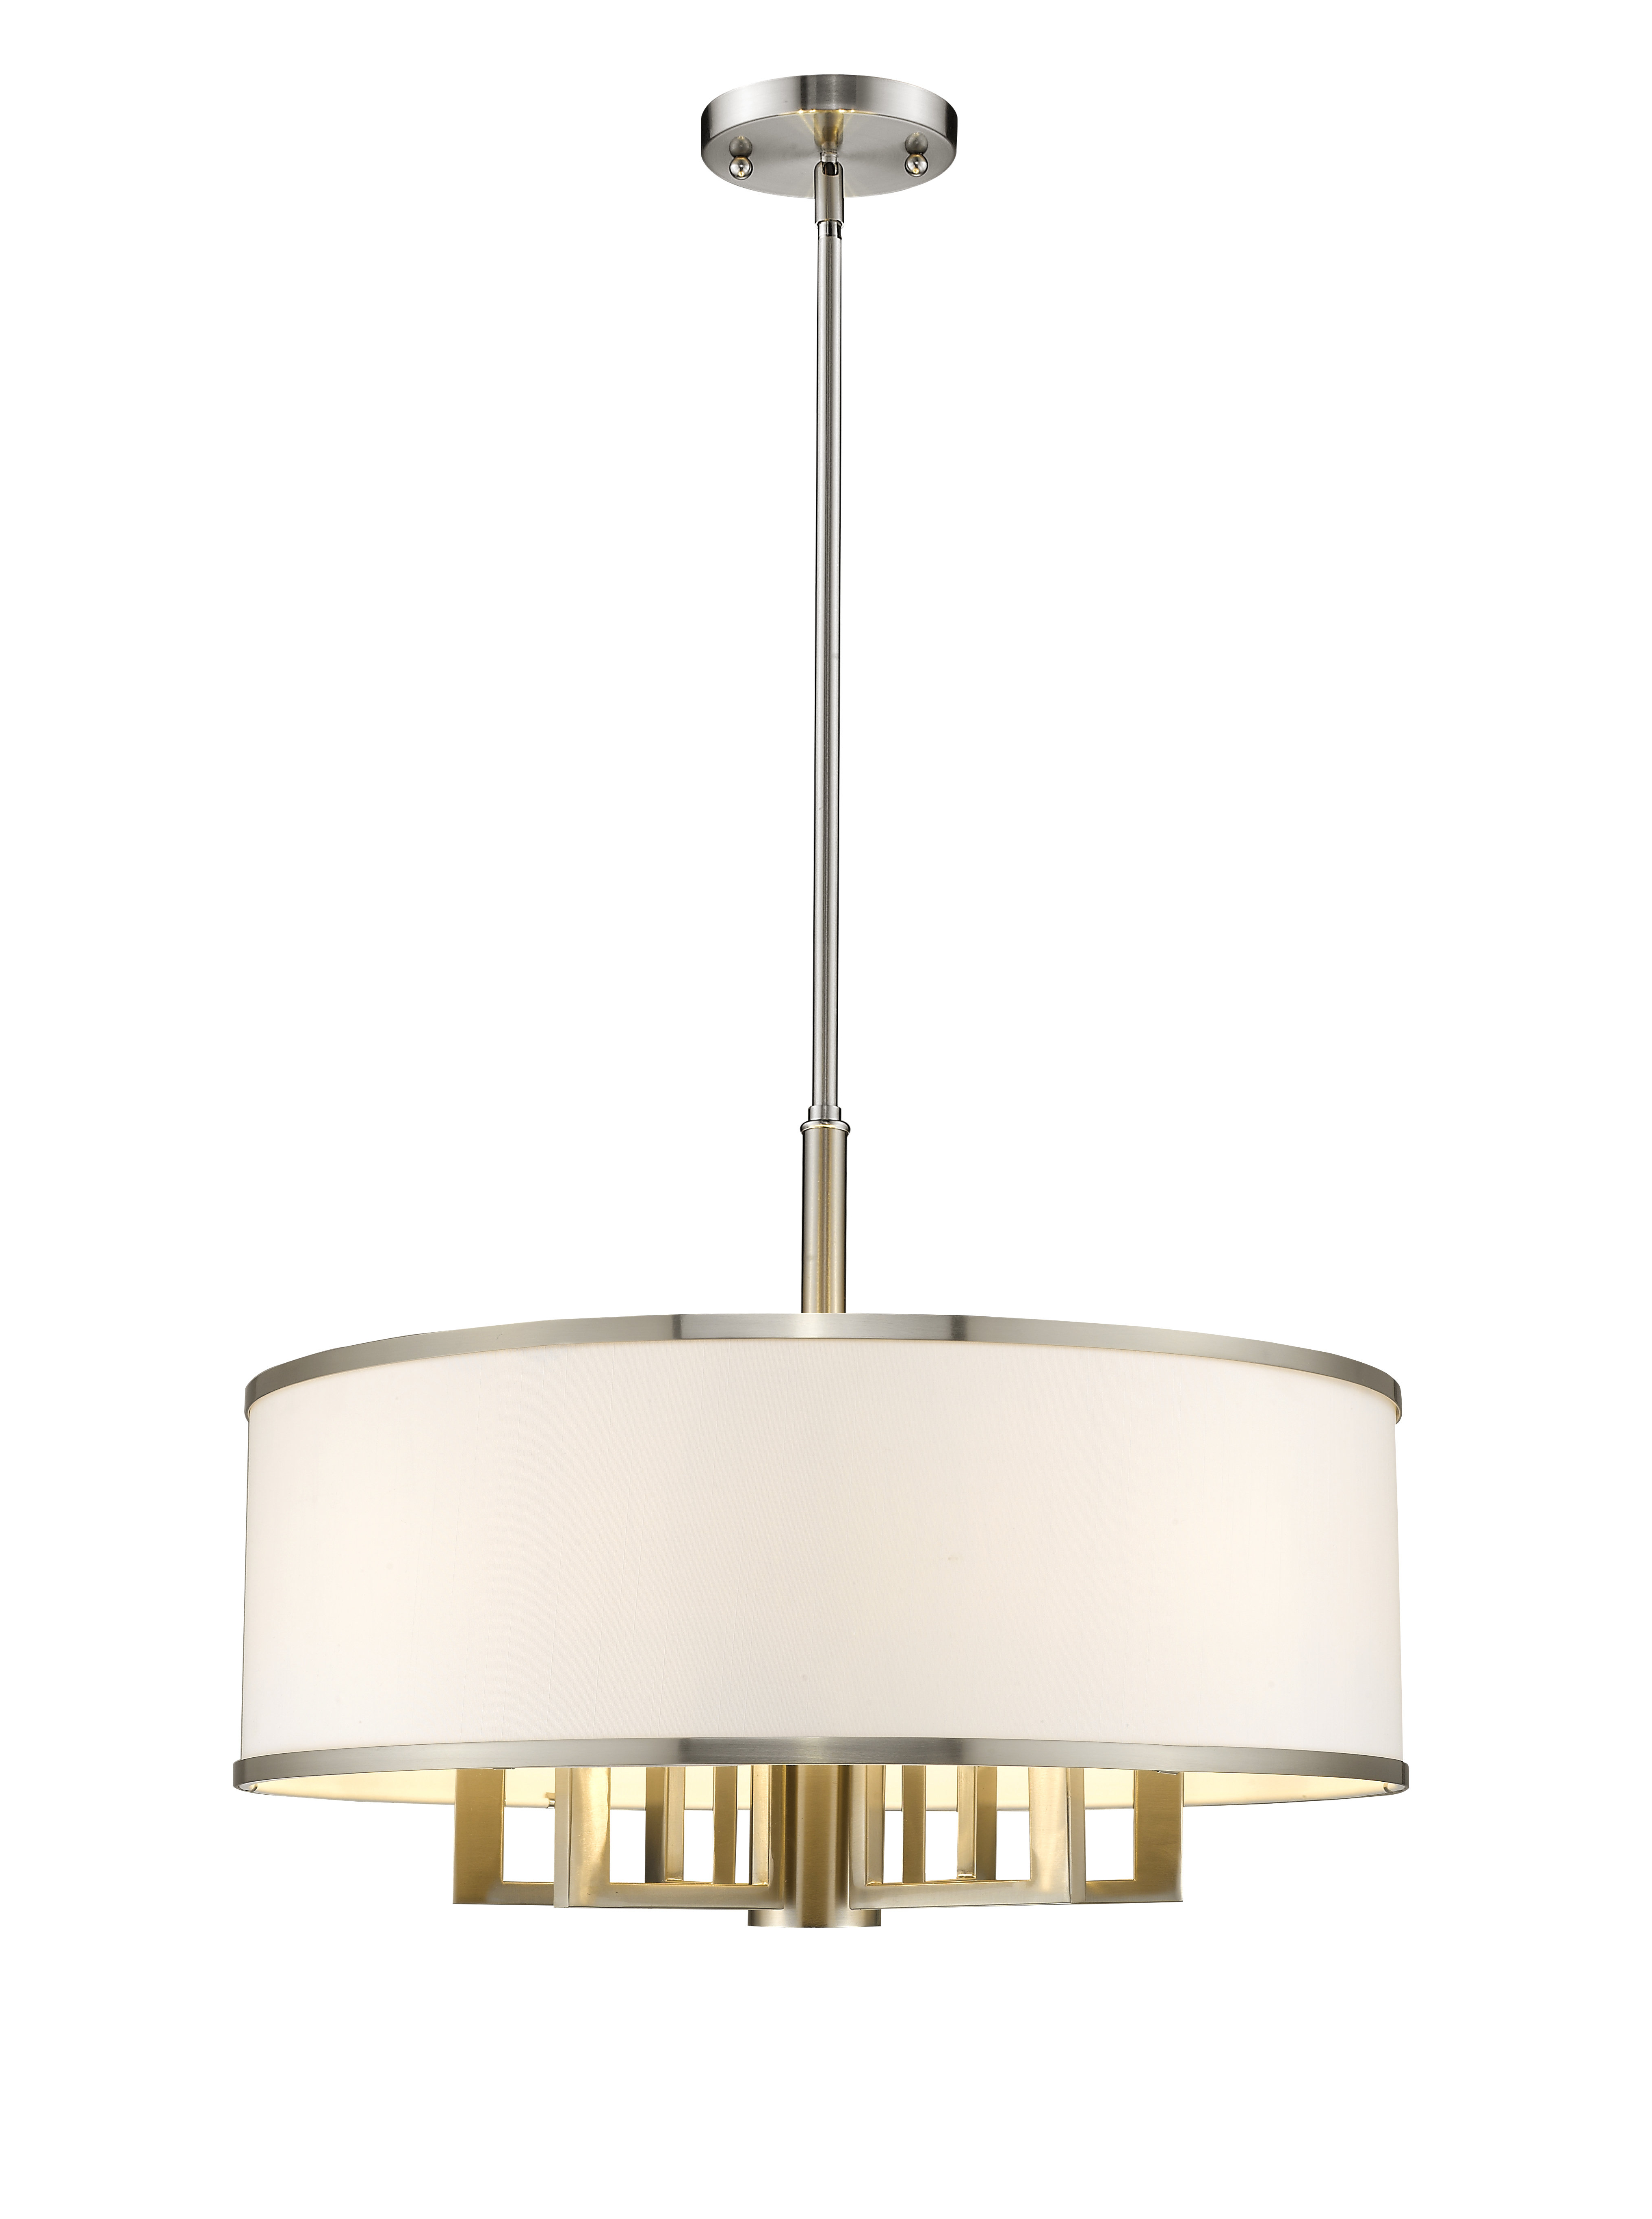 Popular Alina 5 Light Drum Chandeliers Pertaining To Breithaup 7 Light Drum Chandelier (View 23 of 25)